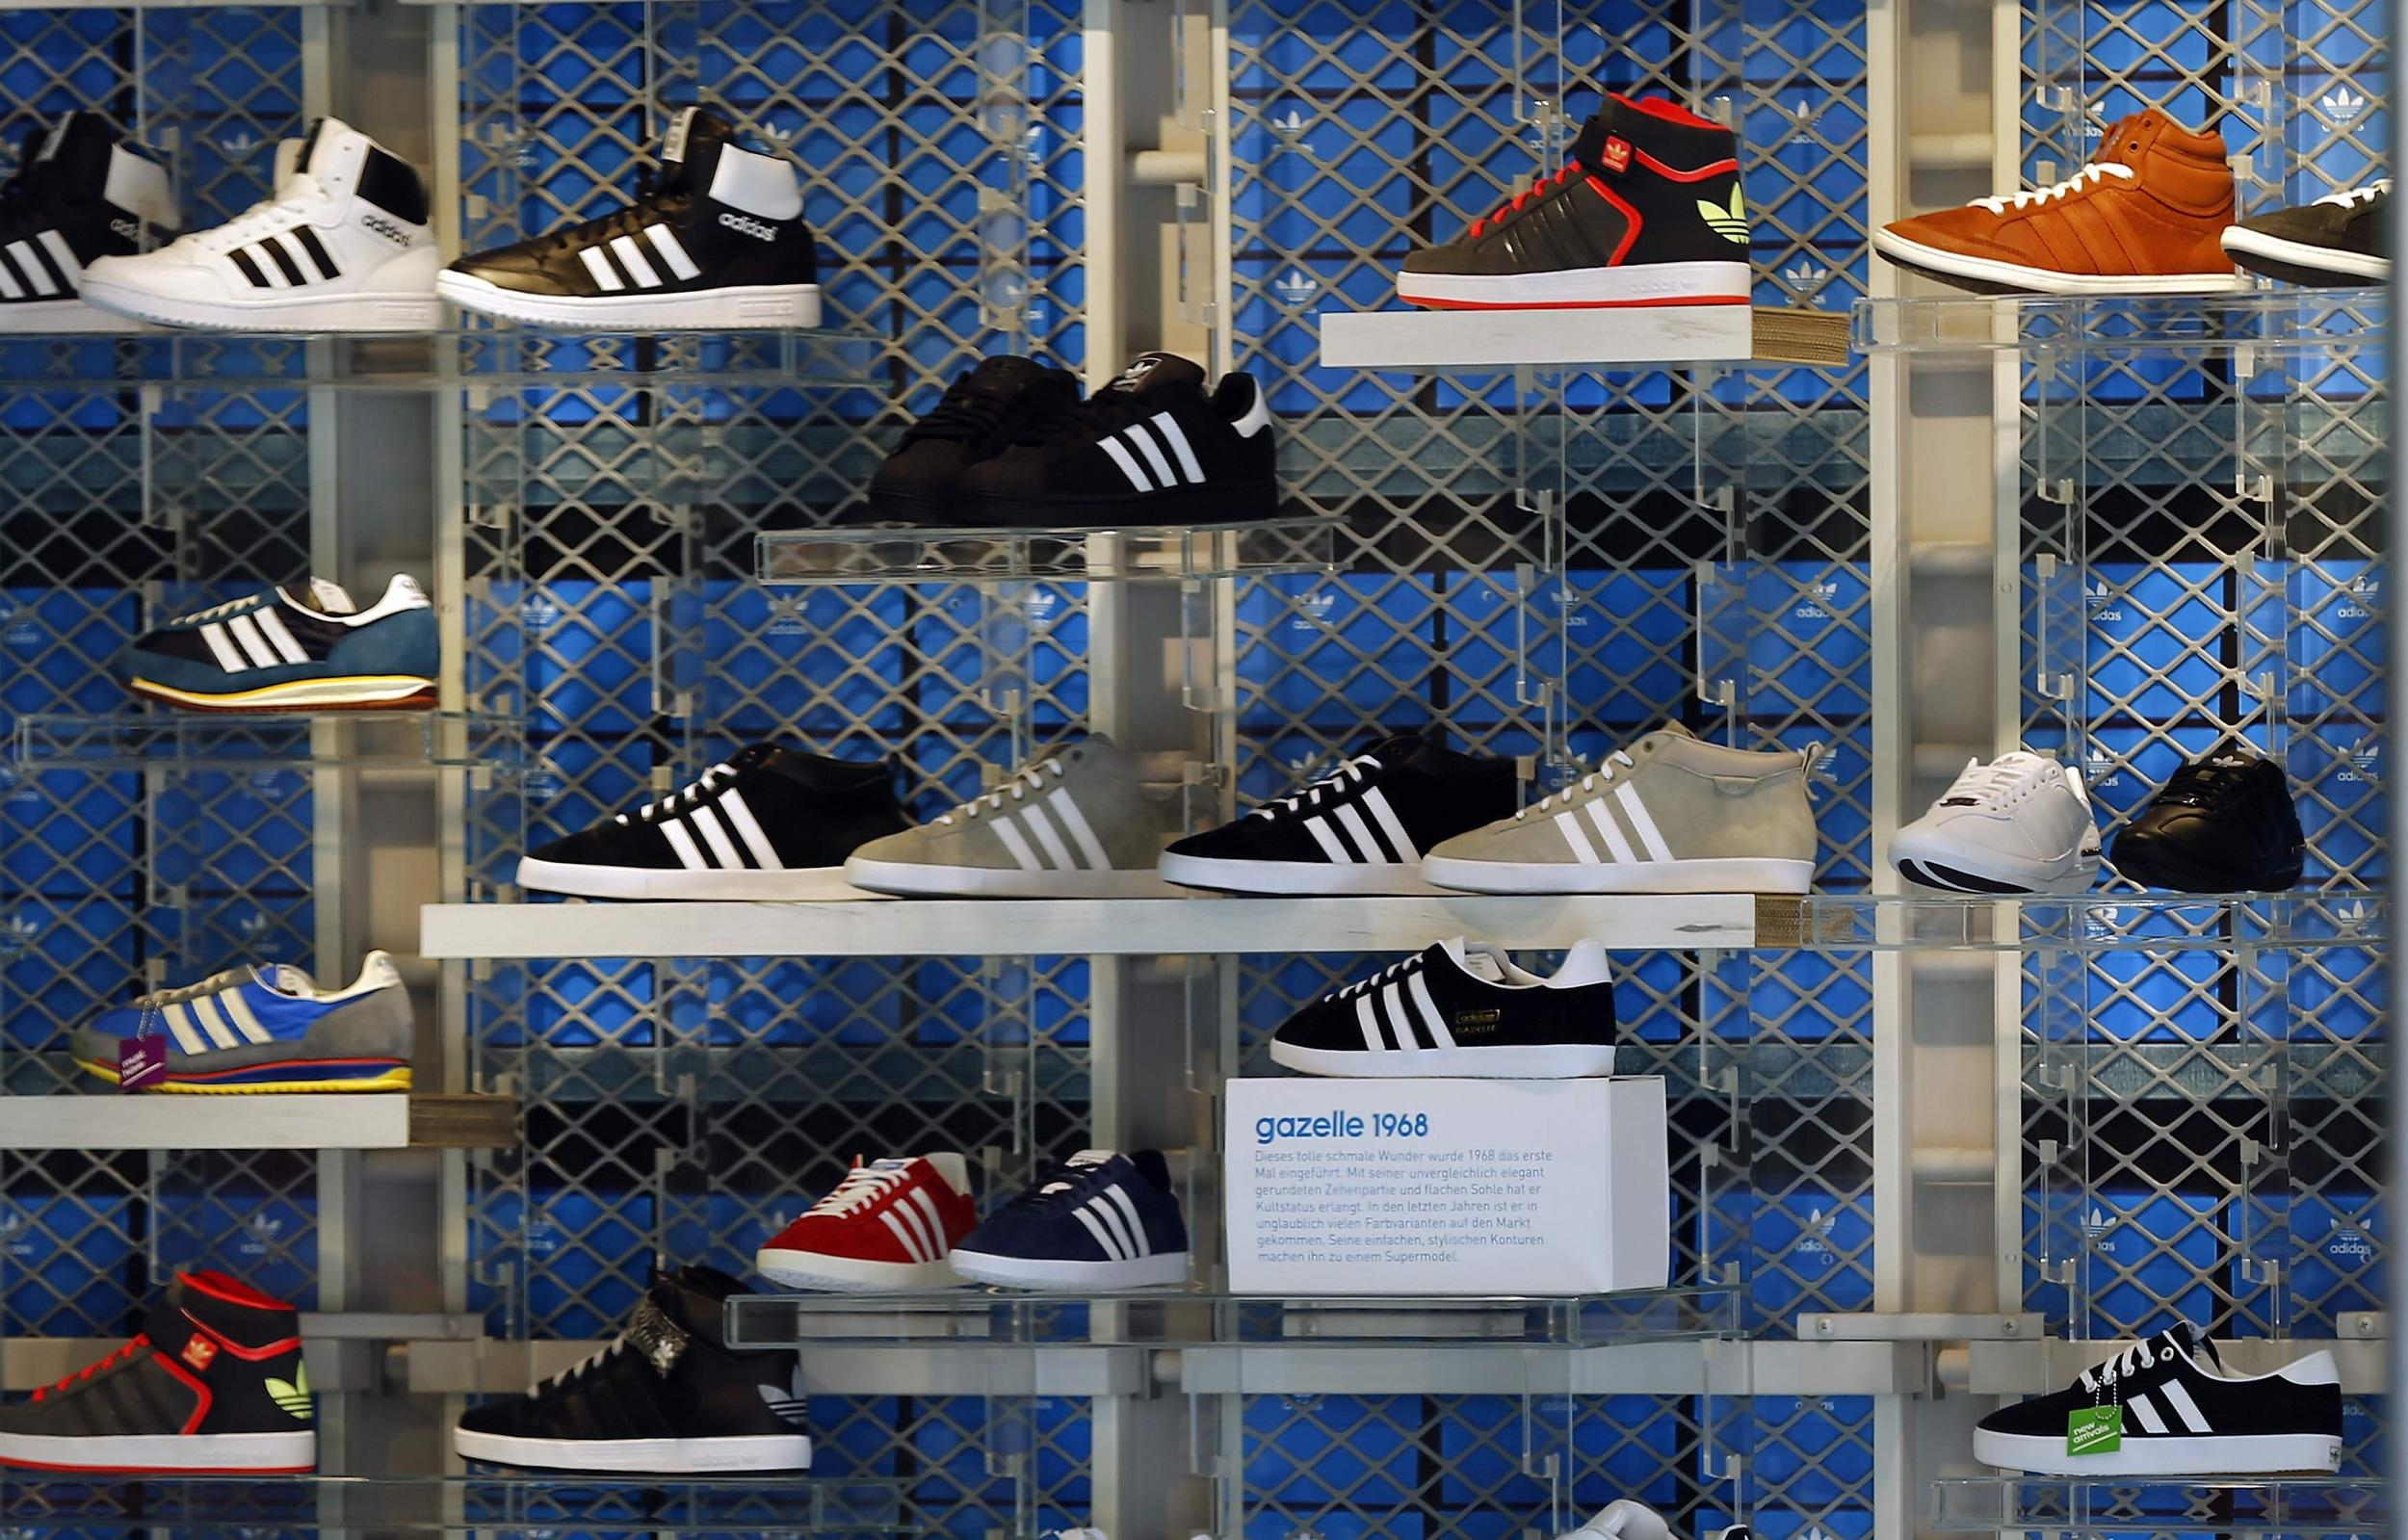 Image: Shoes from Adidas are displayed in a store in Munich